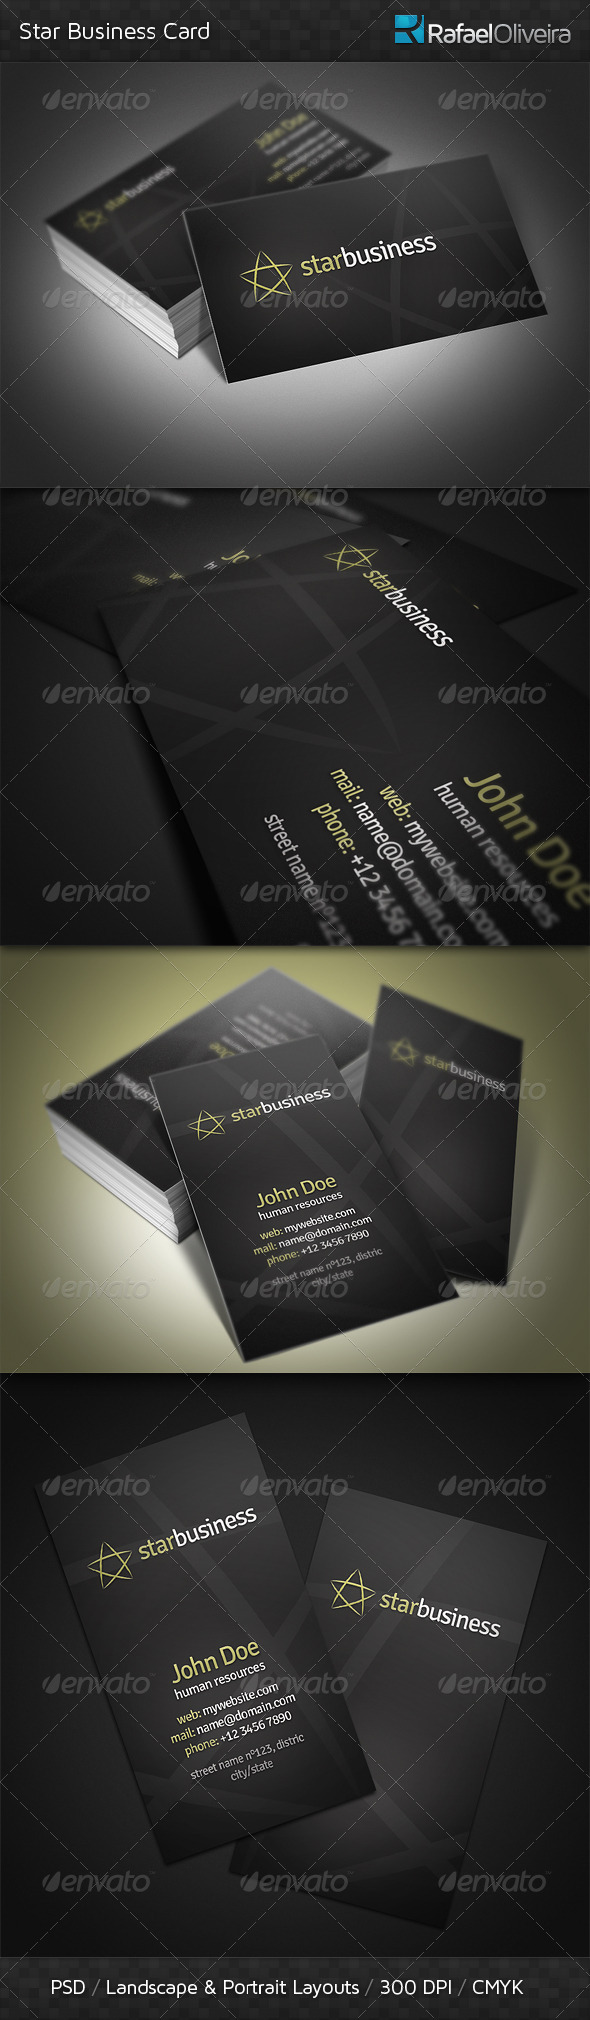 Star Business Card - Corporate Business Cards